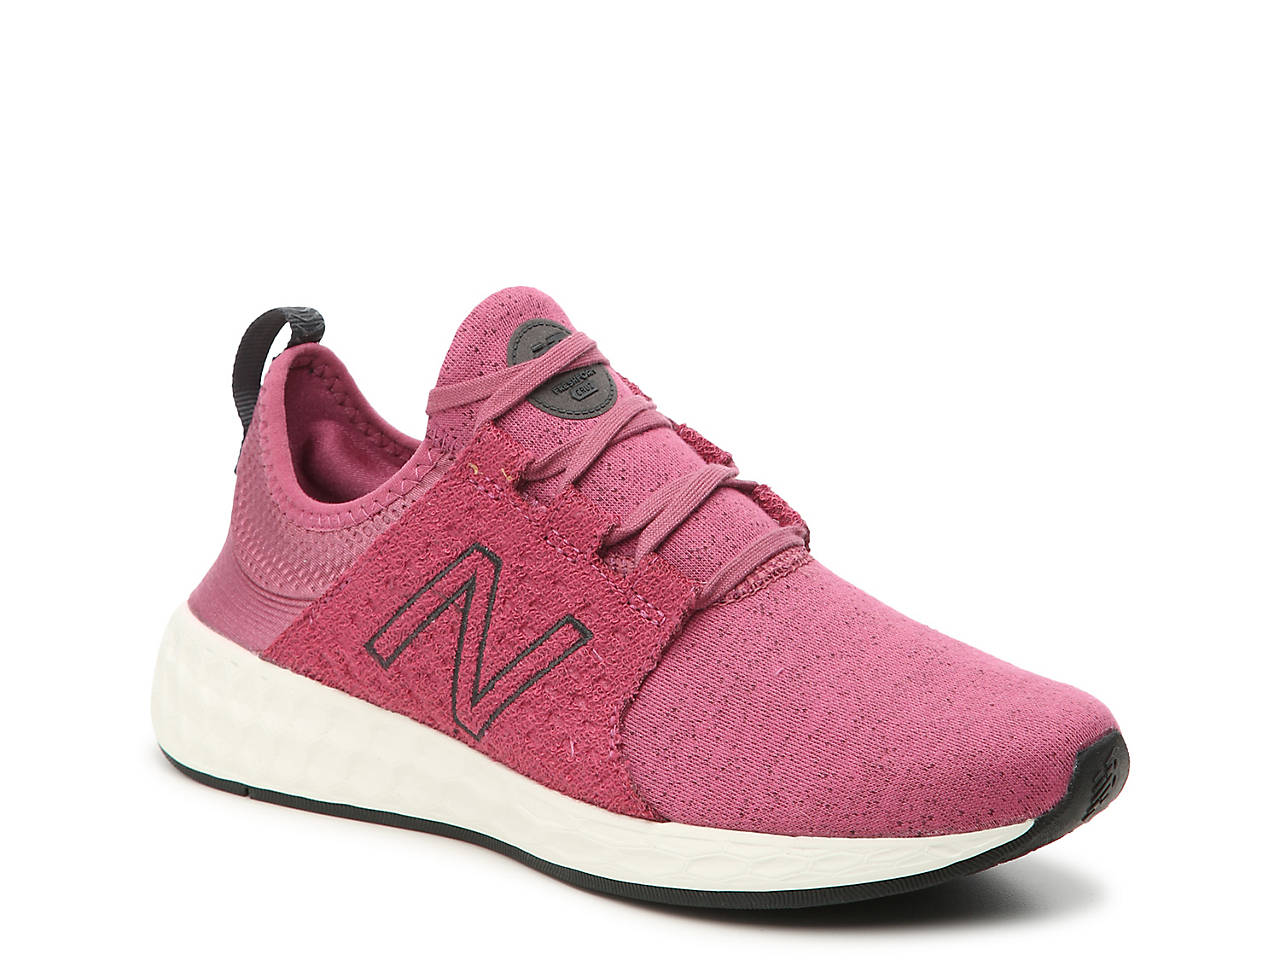 ae0aed18eef5 New Balance Fresh Foam Cruz Lightweight Running Shoe - Women s ...